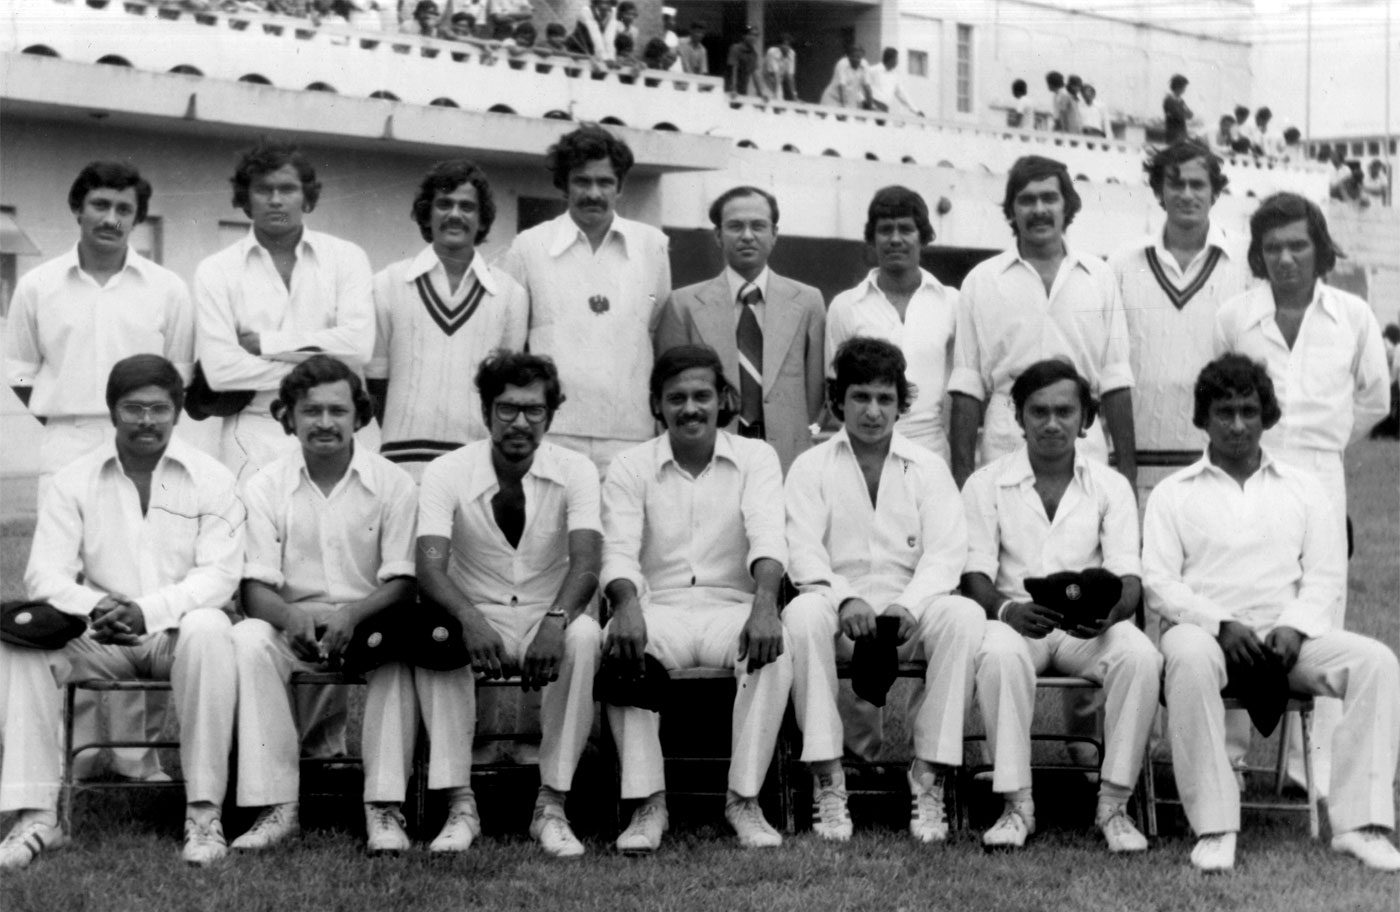 Ramnarayan (standing, fourth from left) in the 1978-79 Andhra Bank squad, led by S Venkataraghavan (sitting, fourth from left)